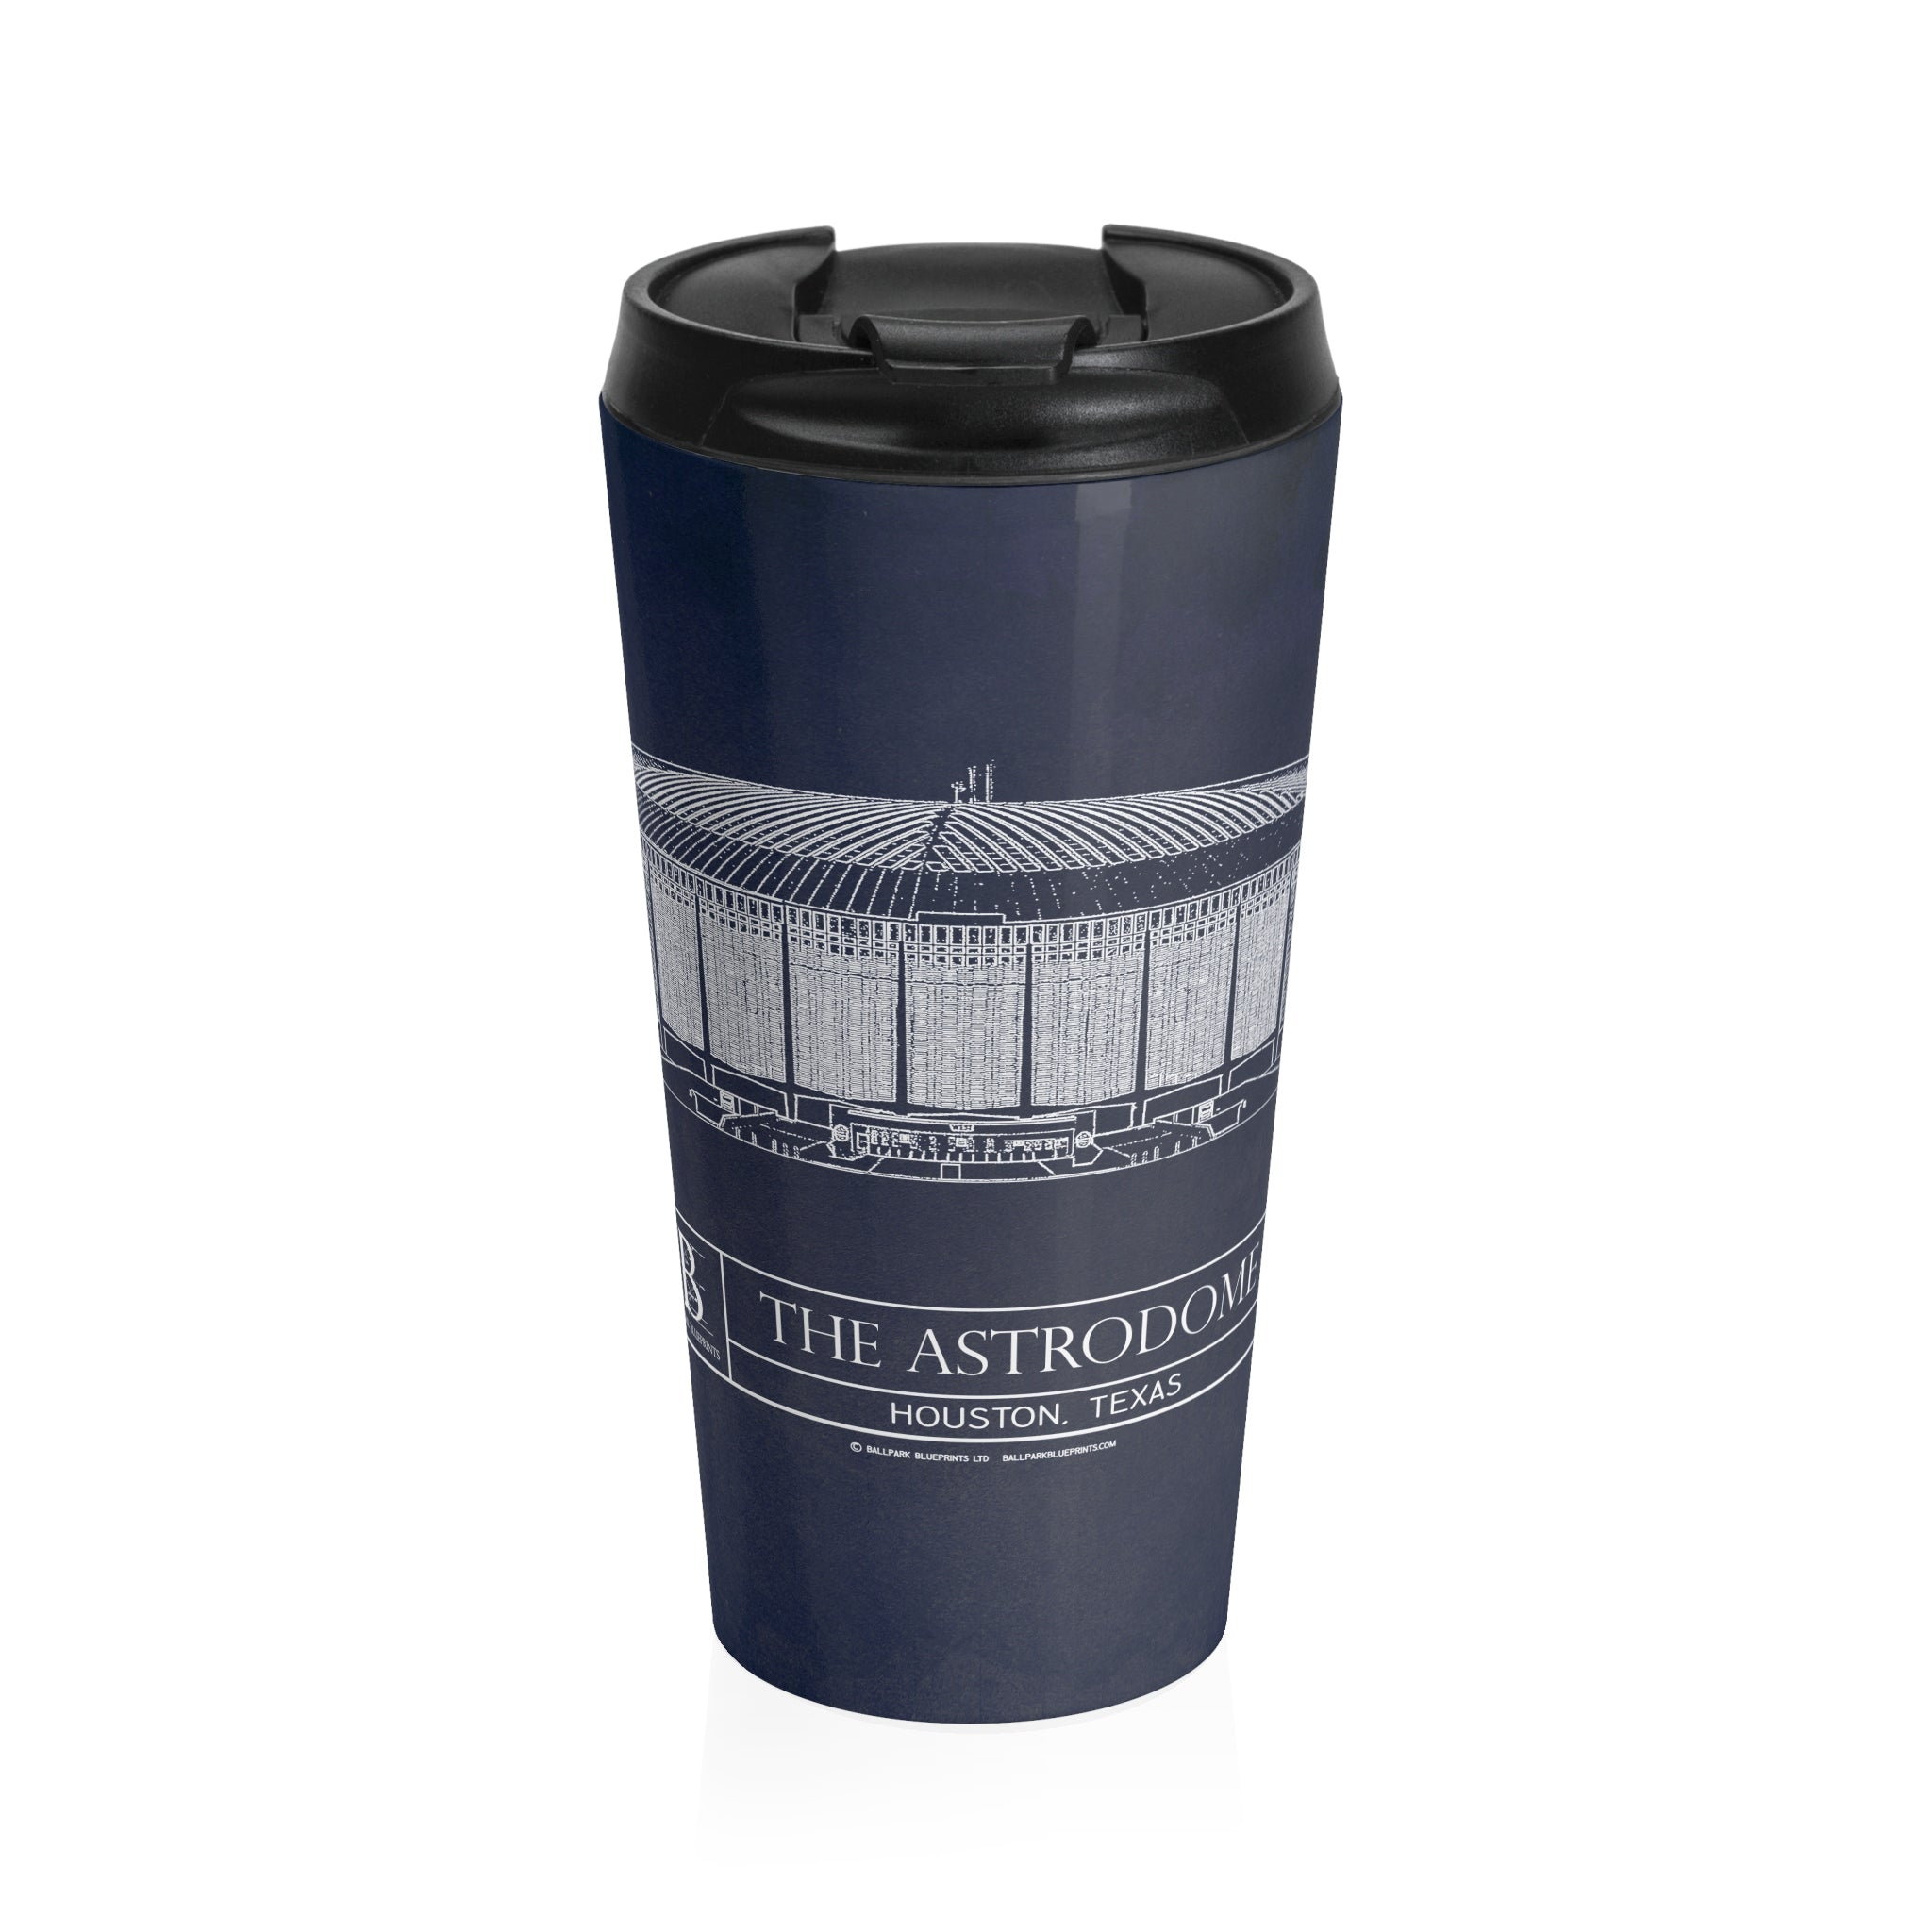 Astrodome stainless steel travel mug ballpark blueprints astrodome stainless steel travel mug malvernweather Images